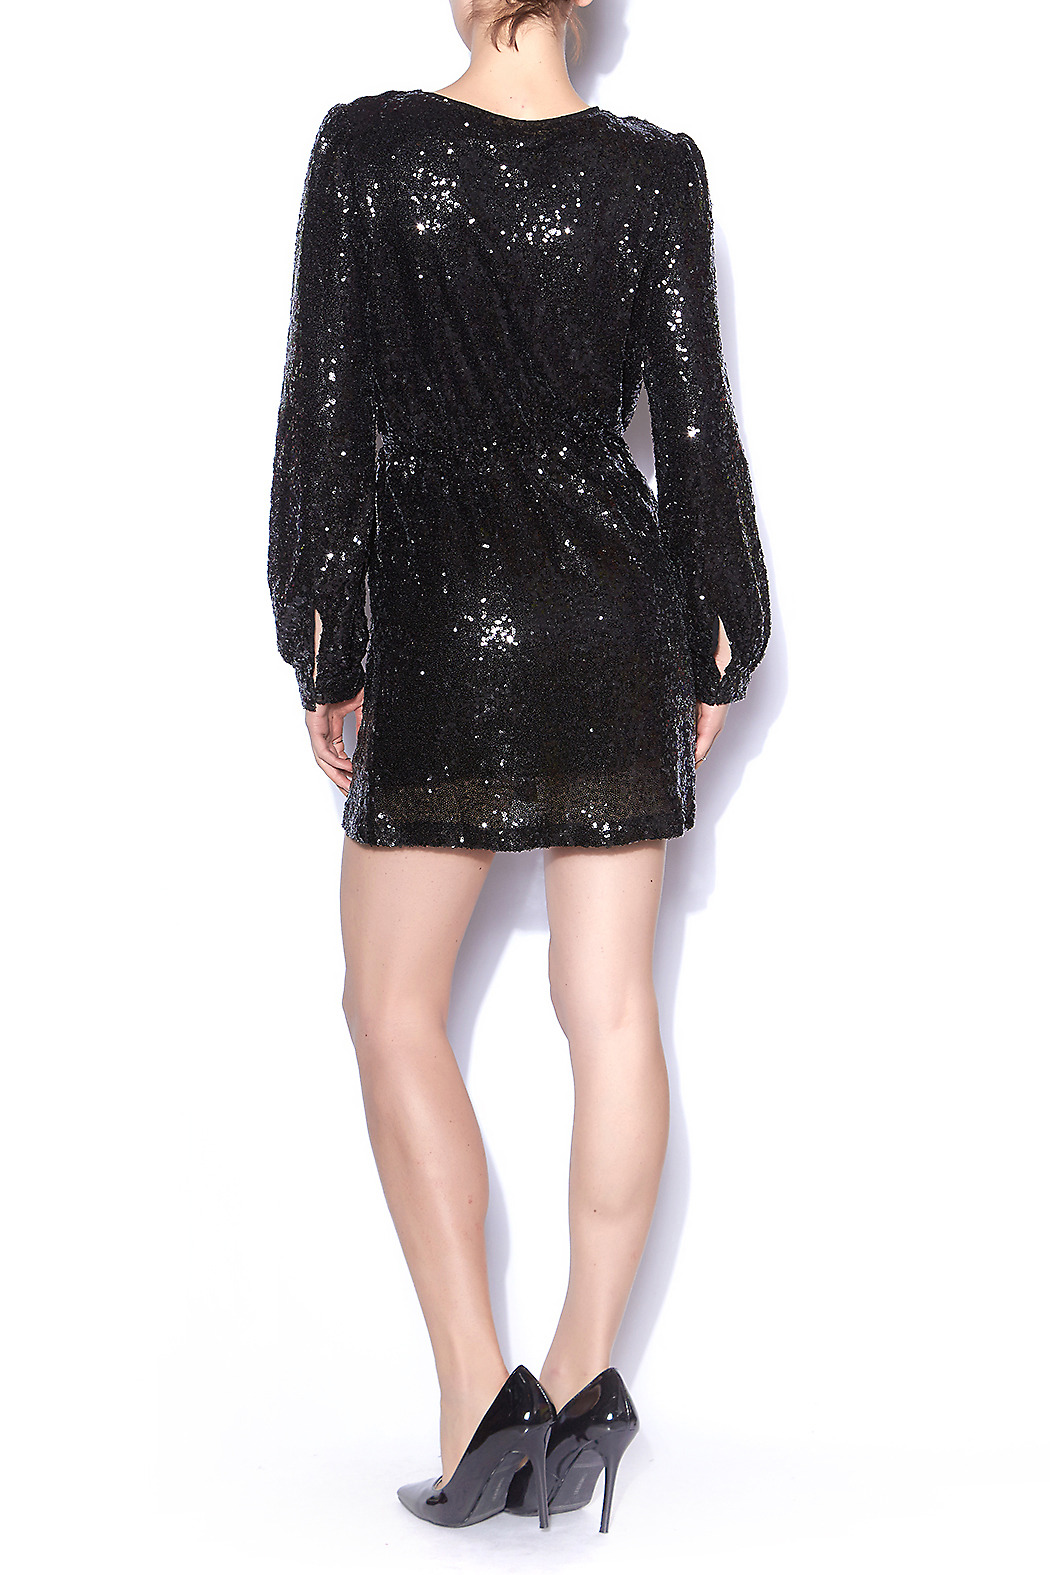 Honey Punch Black Sequin Wrap Dress From Mississippi By